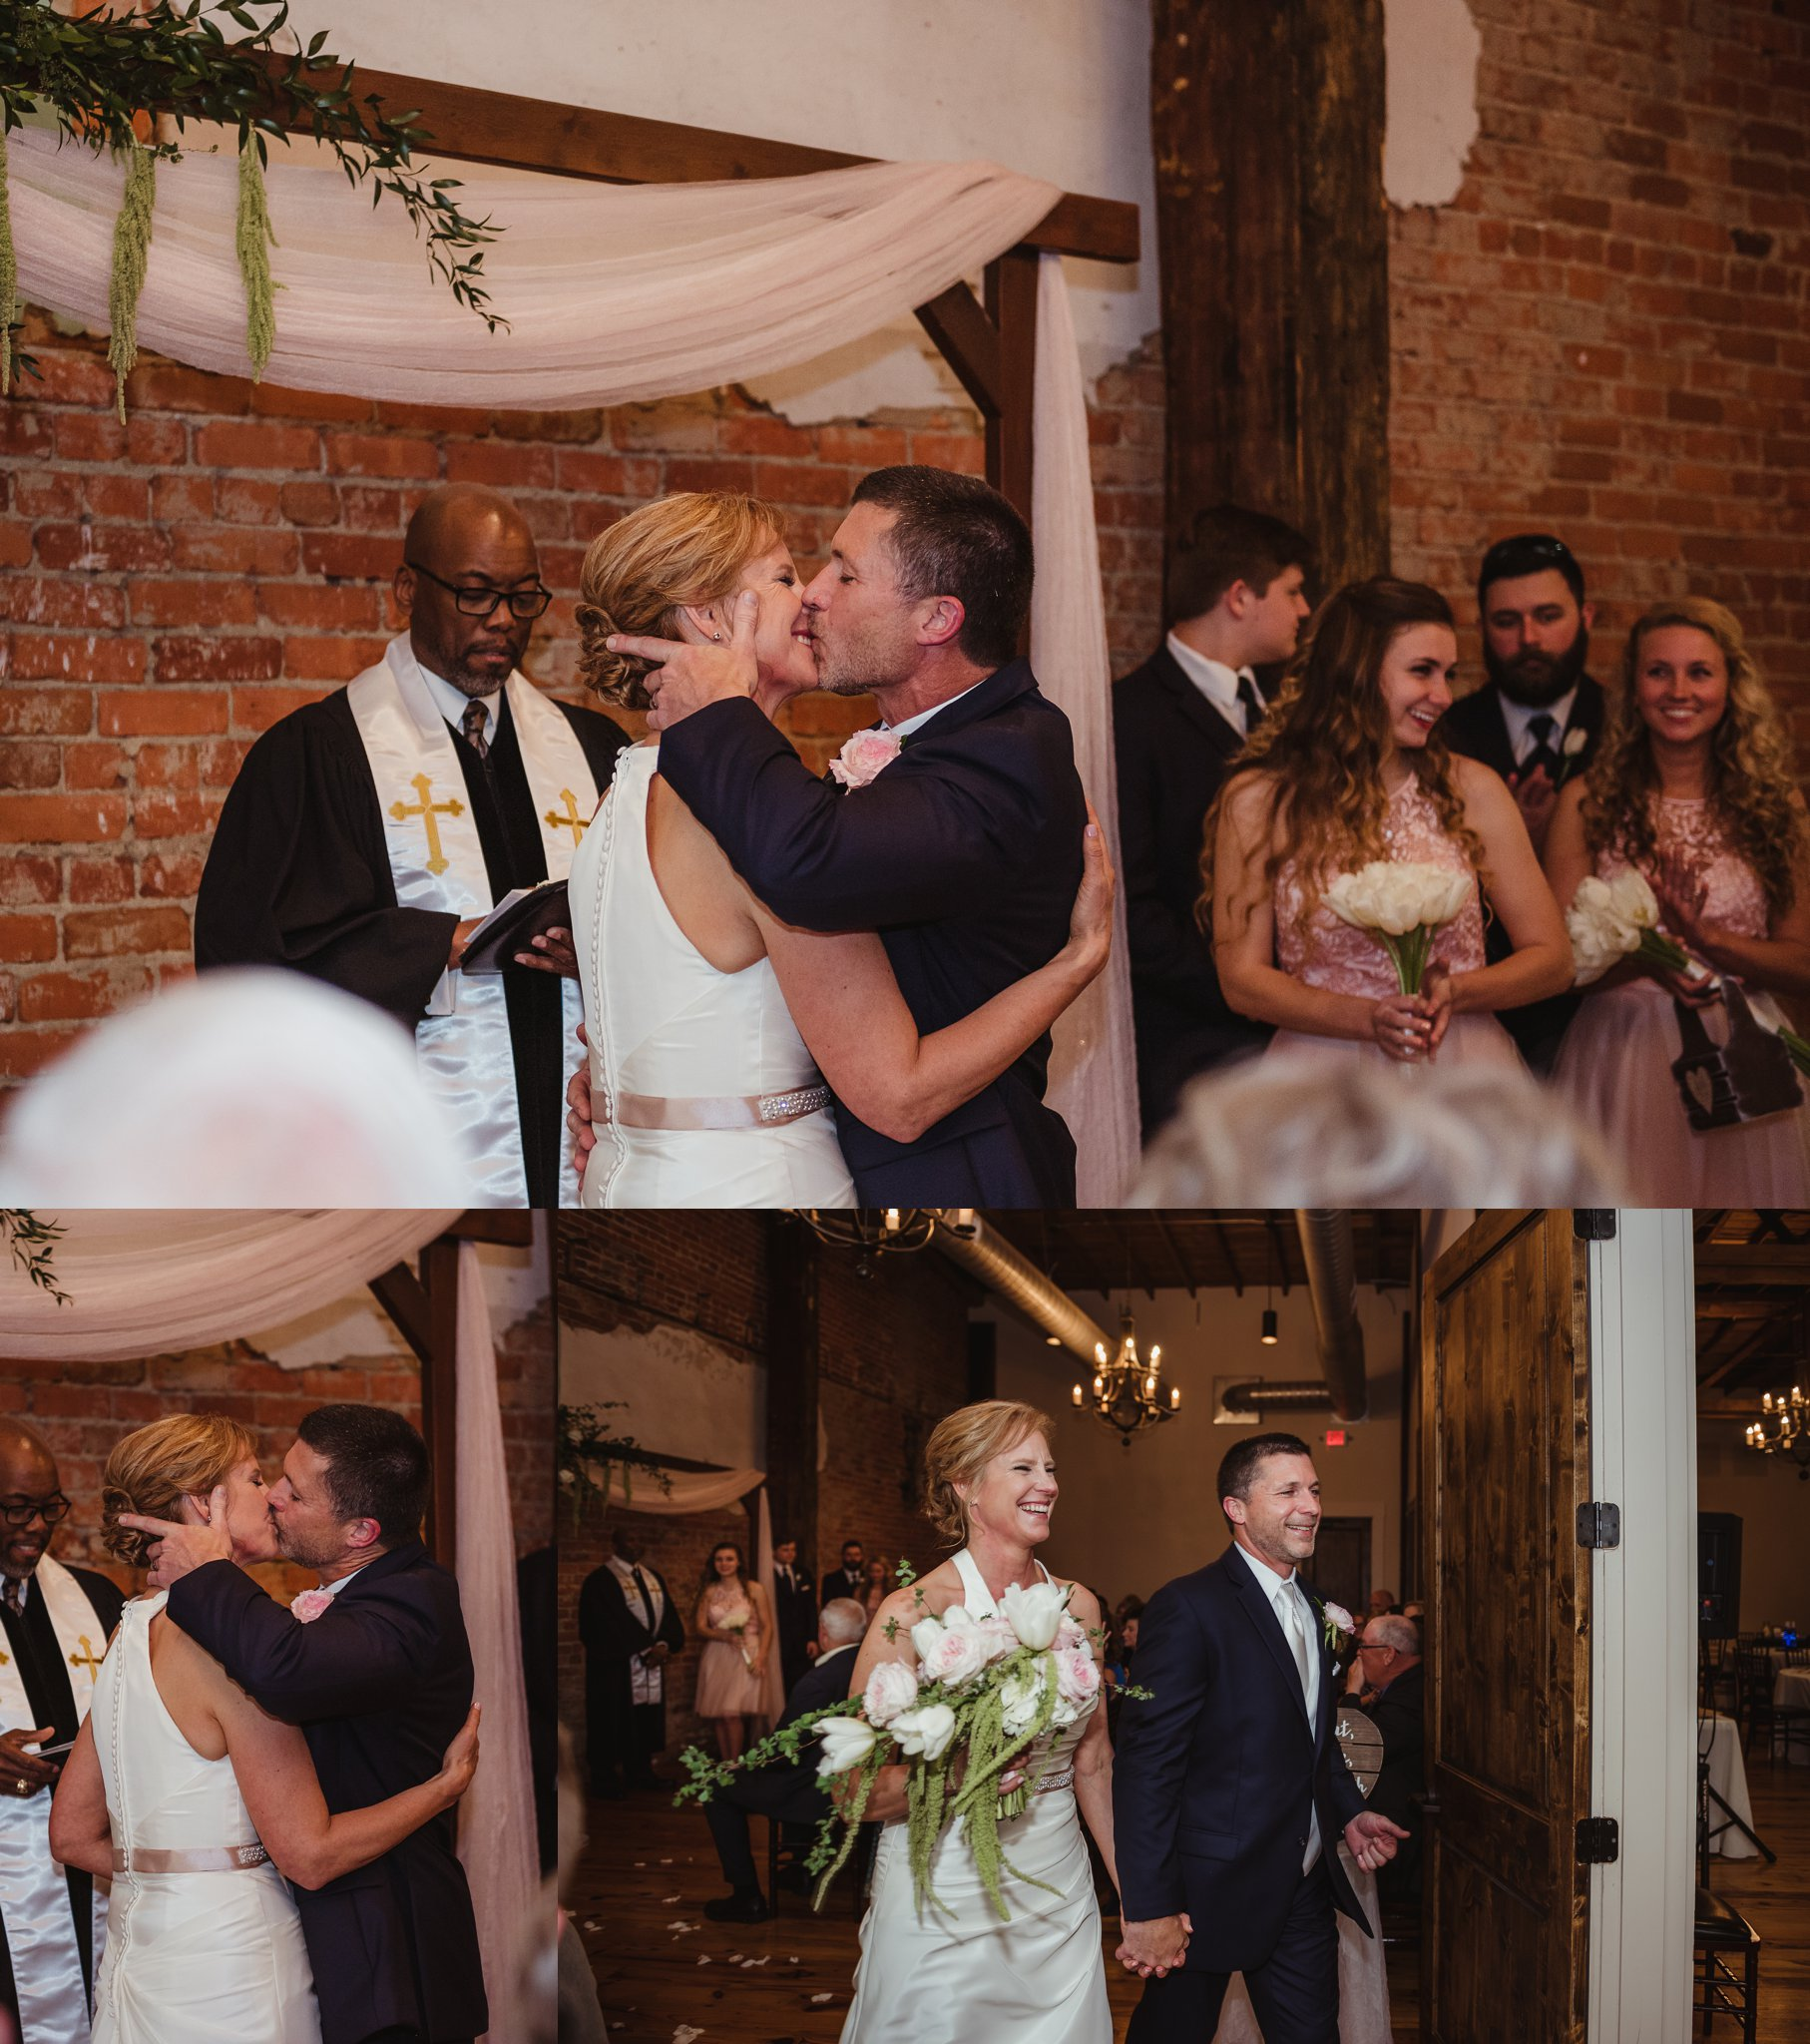 The bride and groom share their first kiss as husband and wife at their wedding ceremony in Youngsville, NC, images taken by Rose Trail Images.